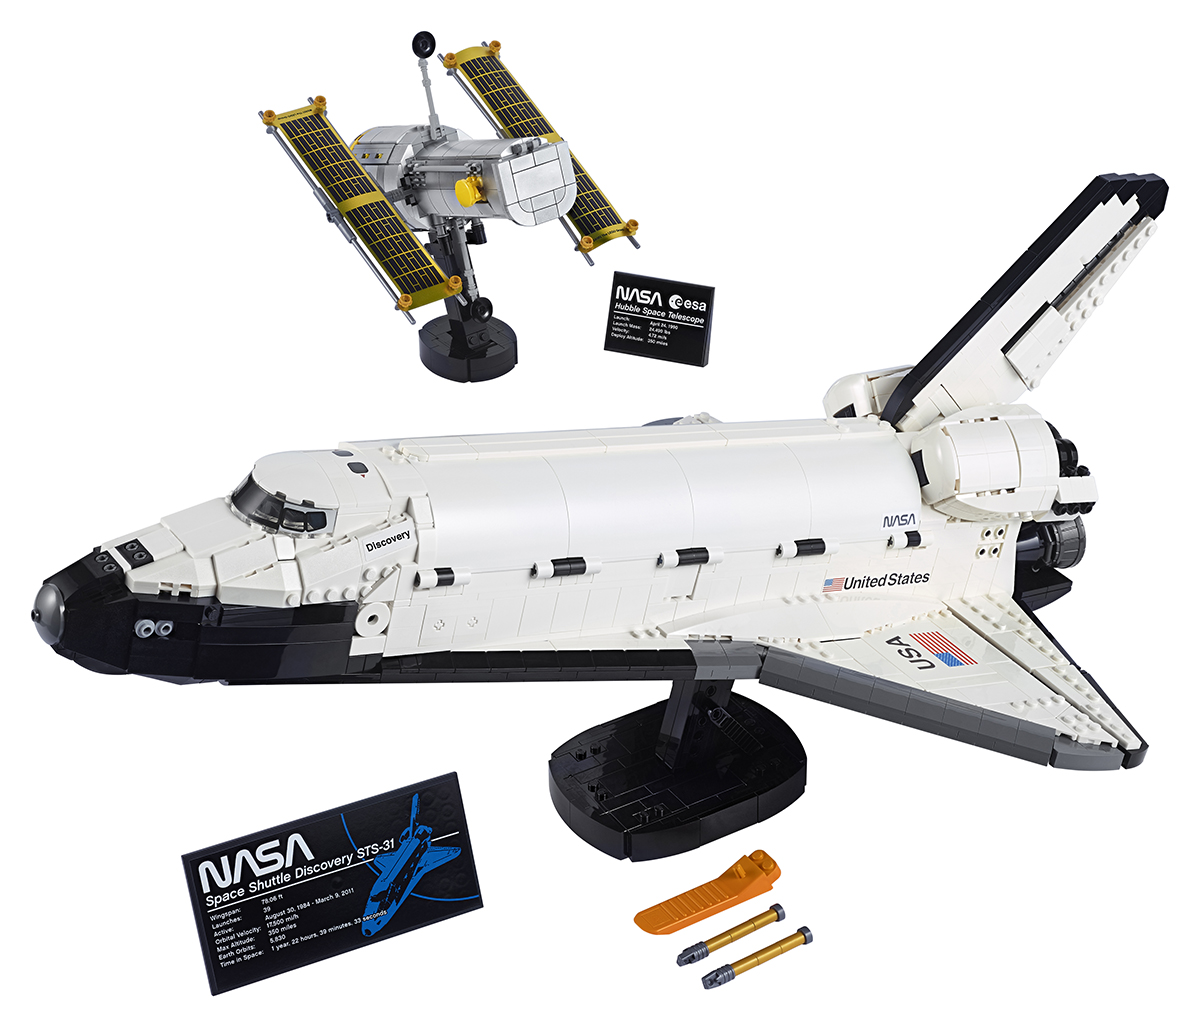 lego-nasa-space-shuttle-discovery-product-14